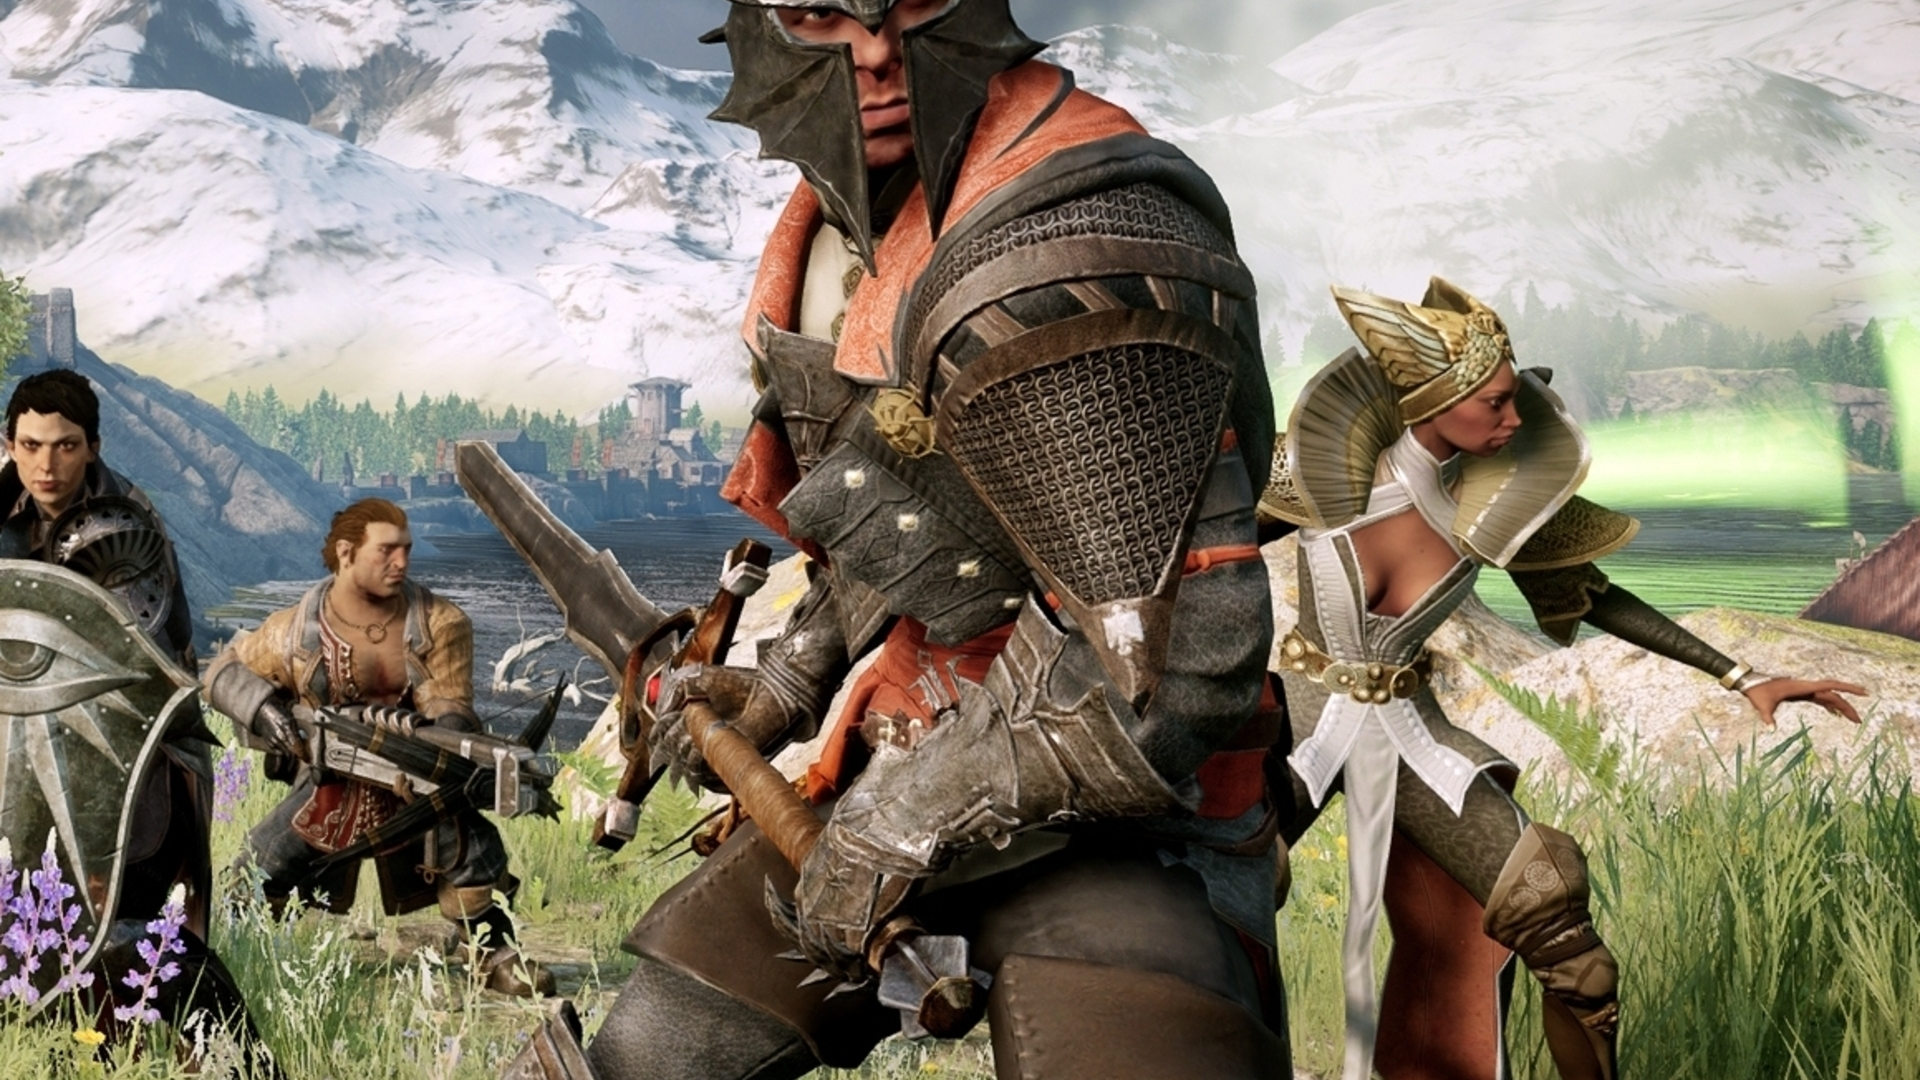 Dragon Age: Inquisition incluirá comandos de voz con Kinect